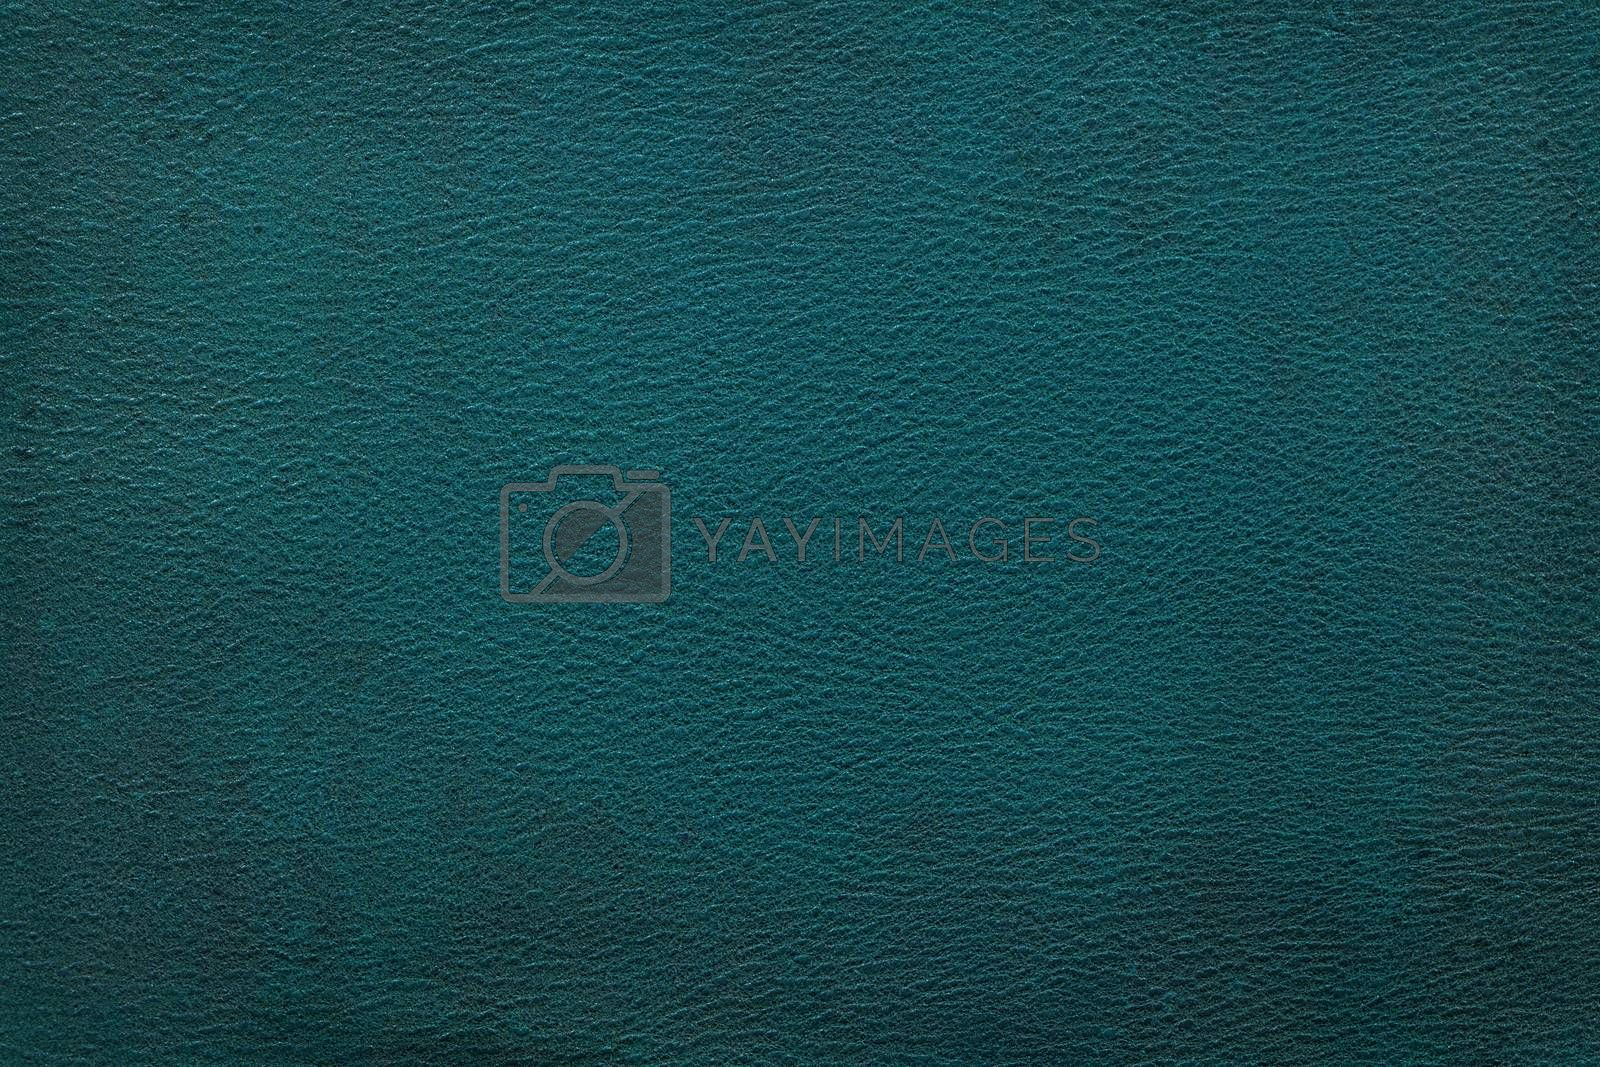 Royalty free image of Leather texture background by IxMaster